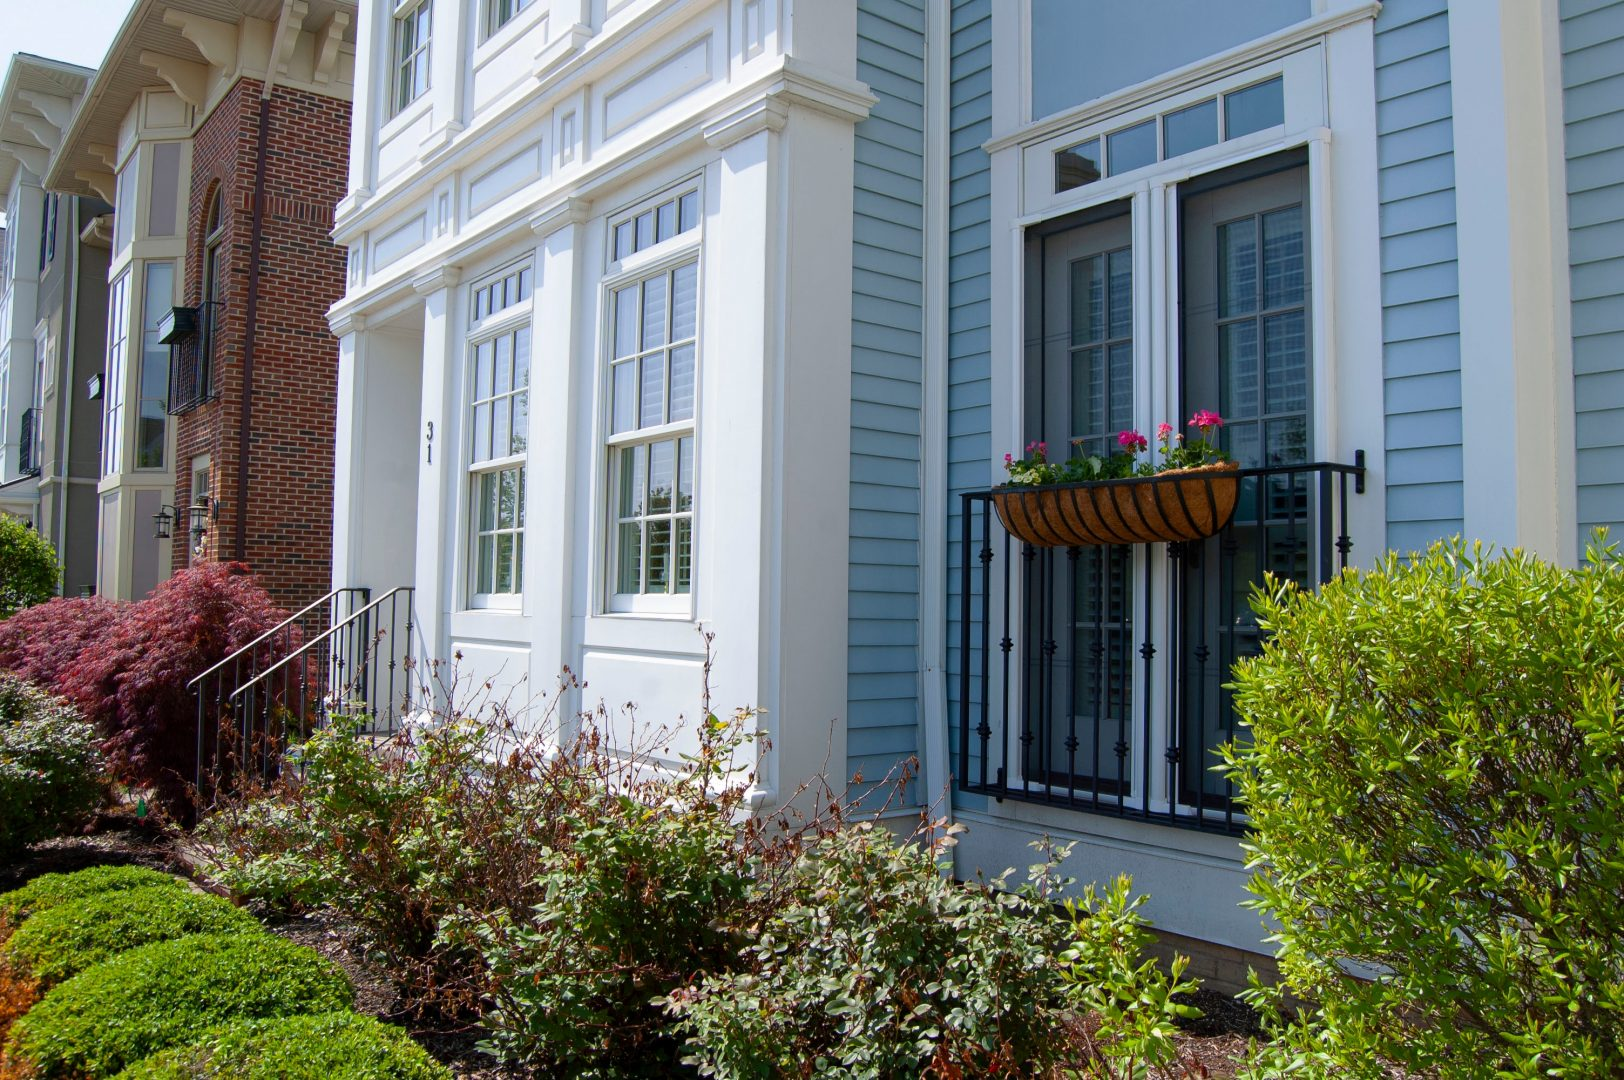 Compare Home Siding Options for your Minnesota home.